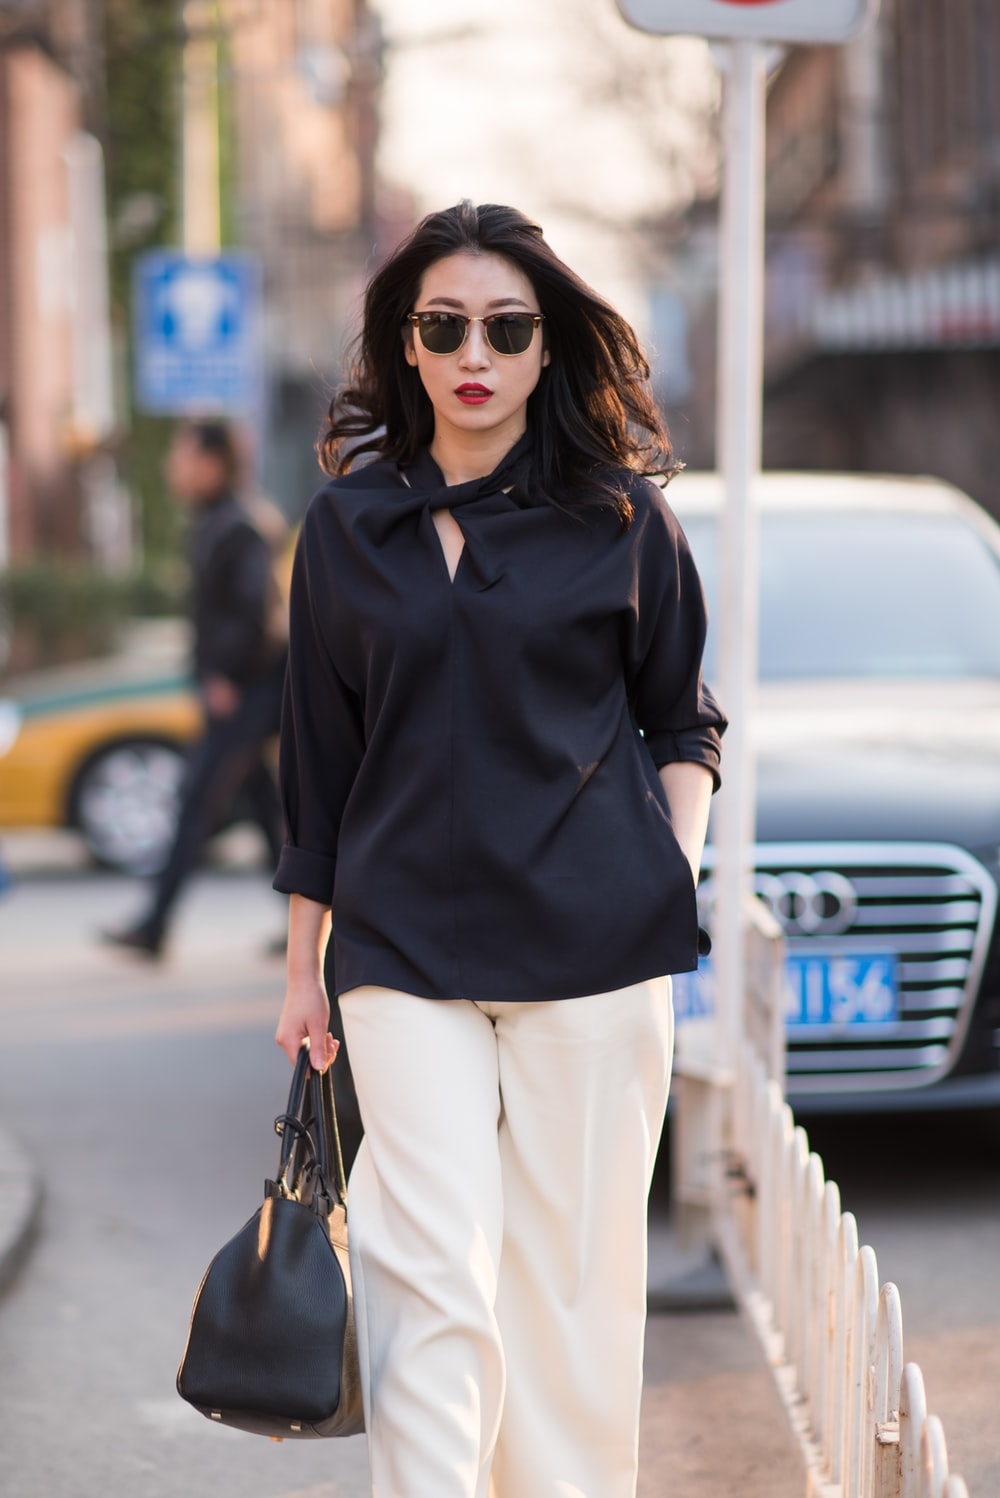 woman in black polo shirt and white pants wearing black sunglasses standing on road during daytime